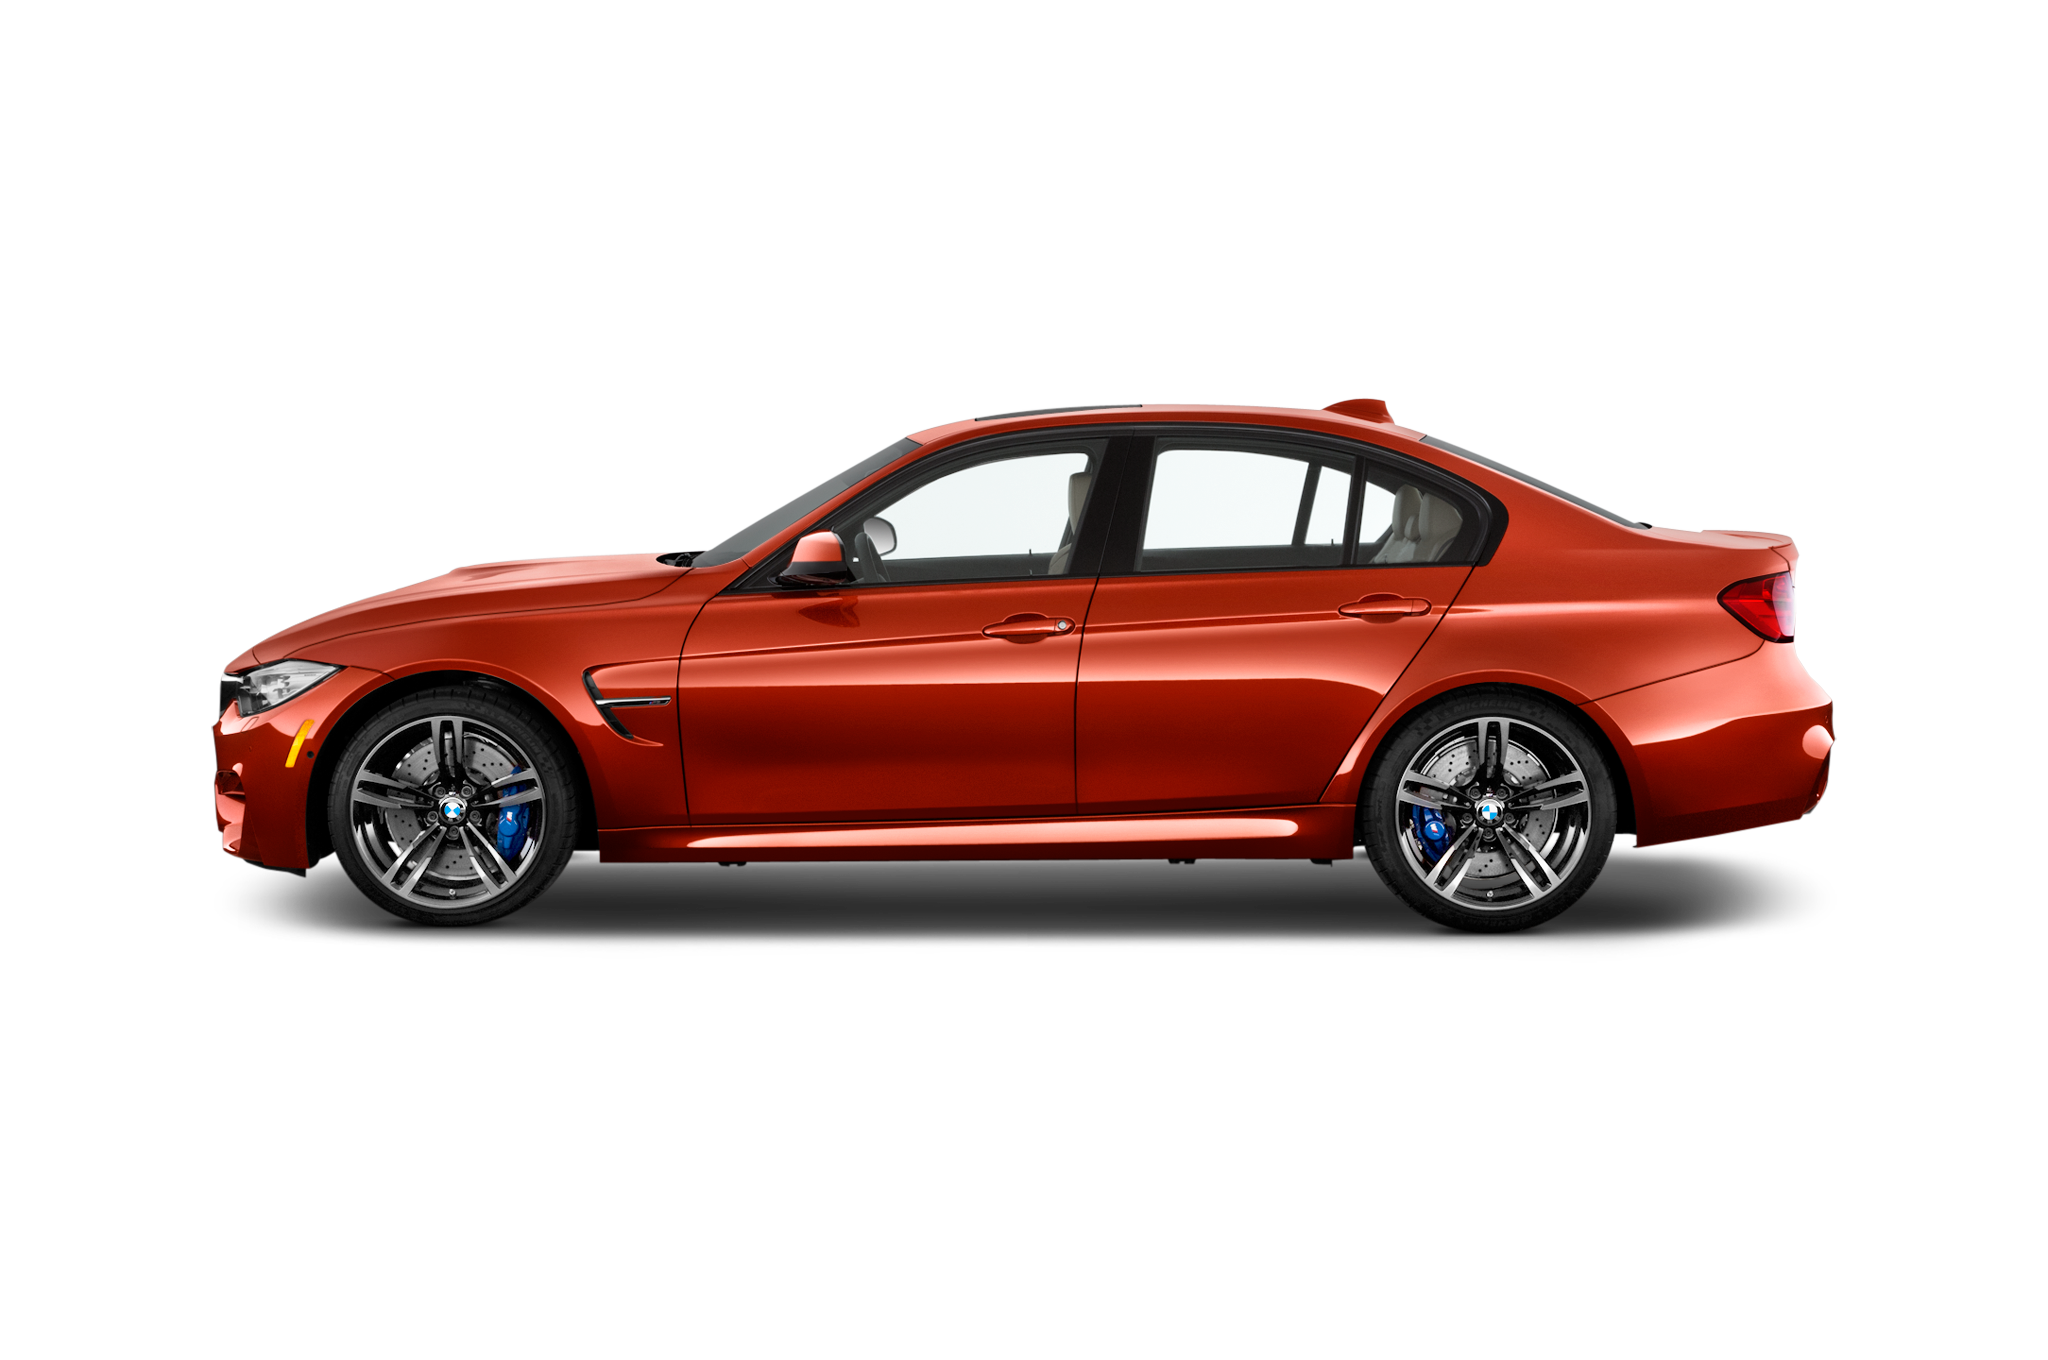 1986 2008 Bmw M3 Historical Timeline Latest News Features And Timelines Automobile Magazine